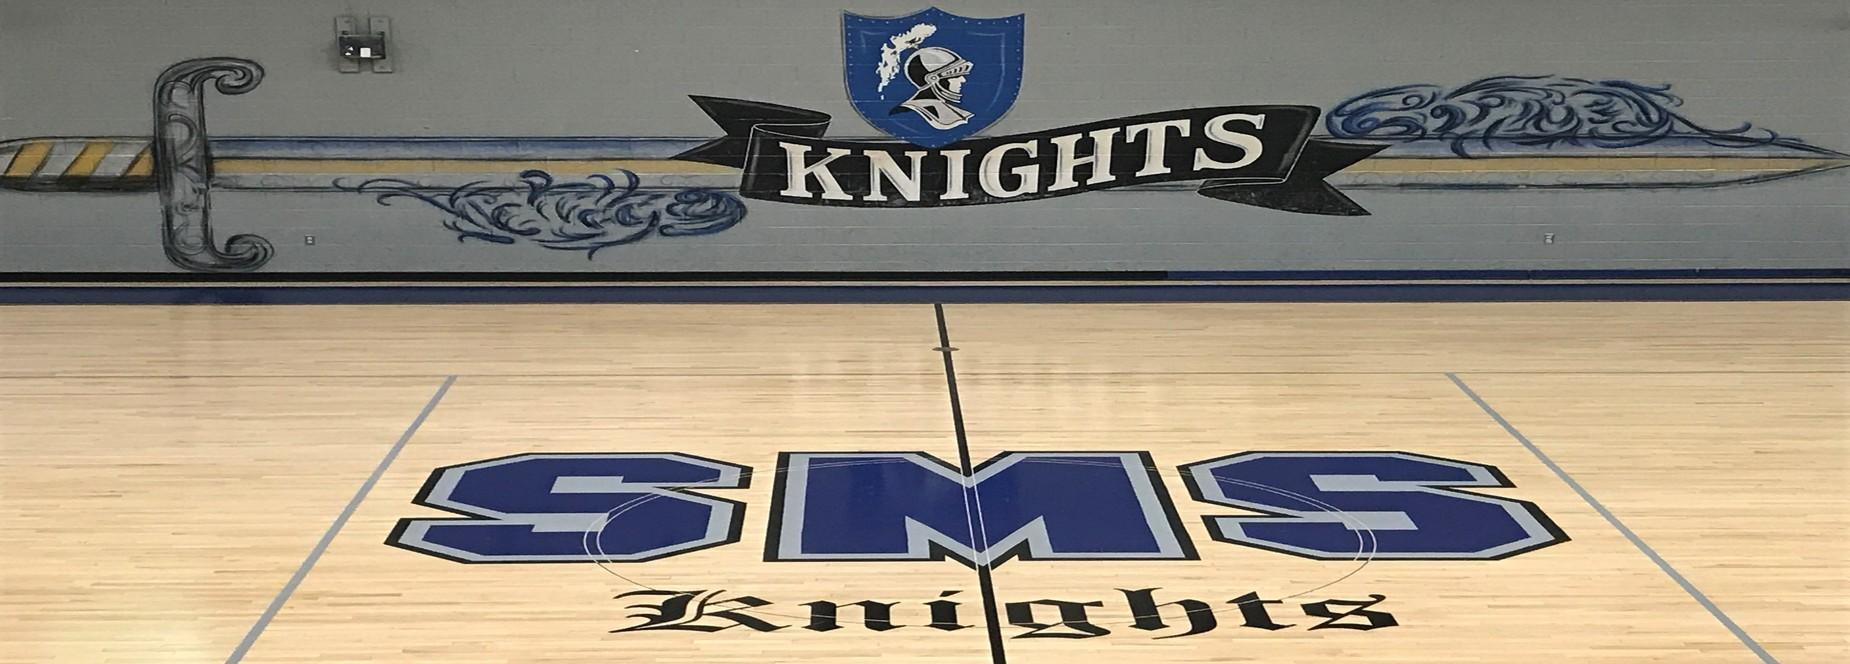 Gym floor with school logo and sword with Knights Shield on wall